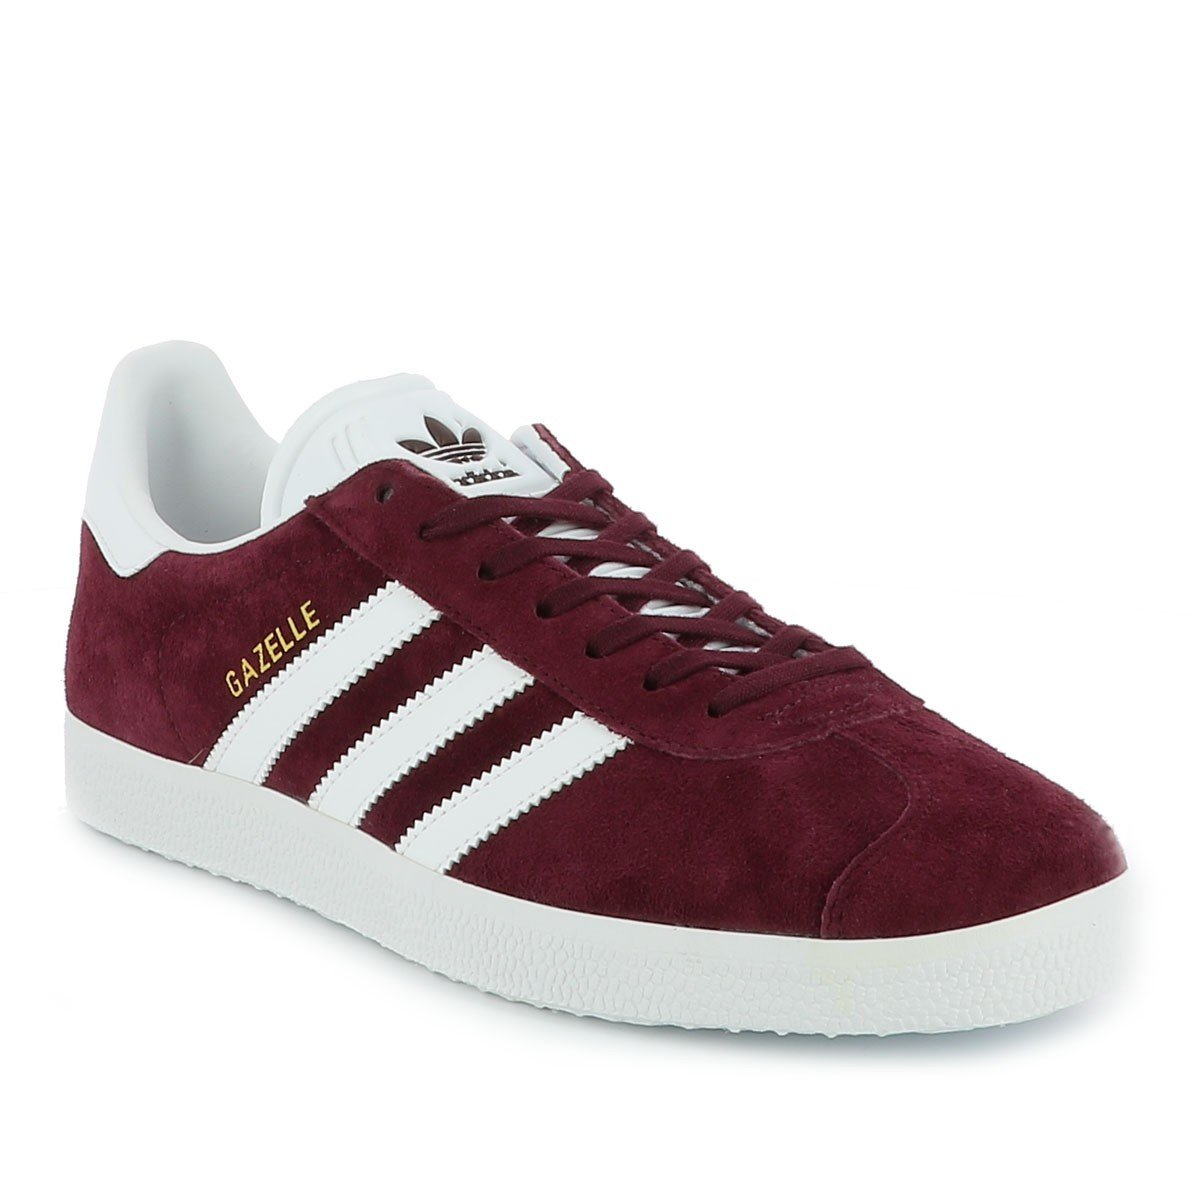 adidas Originals Gazelle II, Baskets Mode Homme